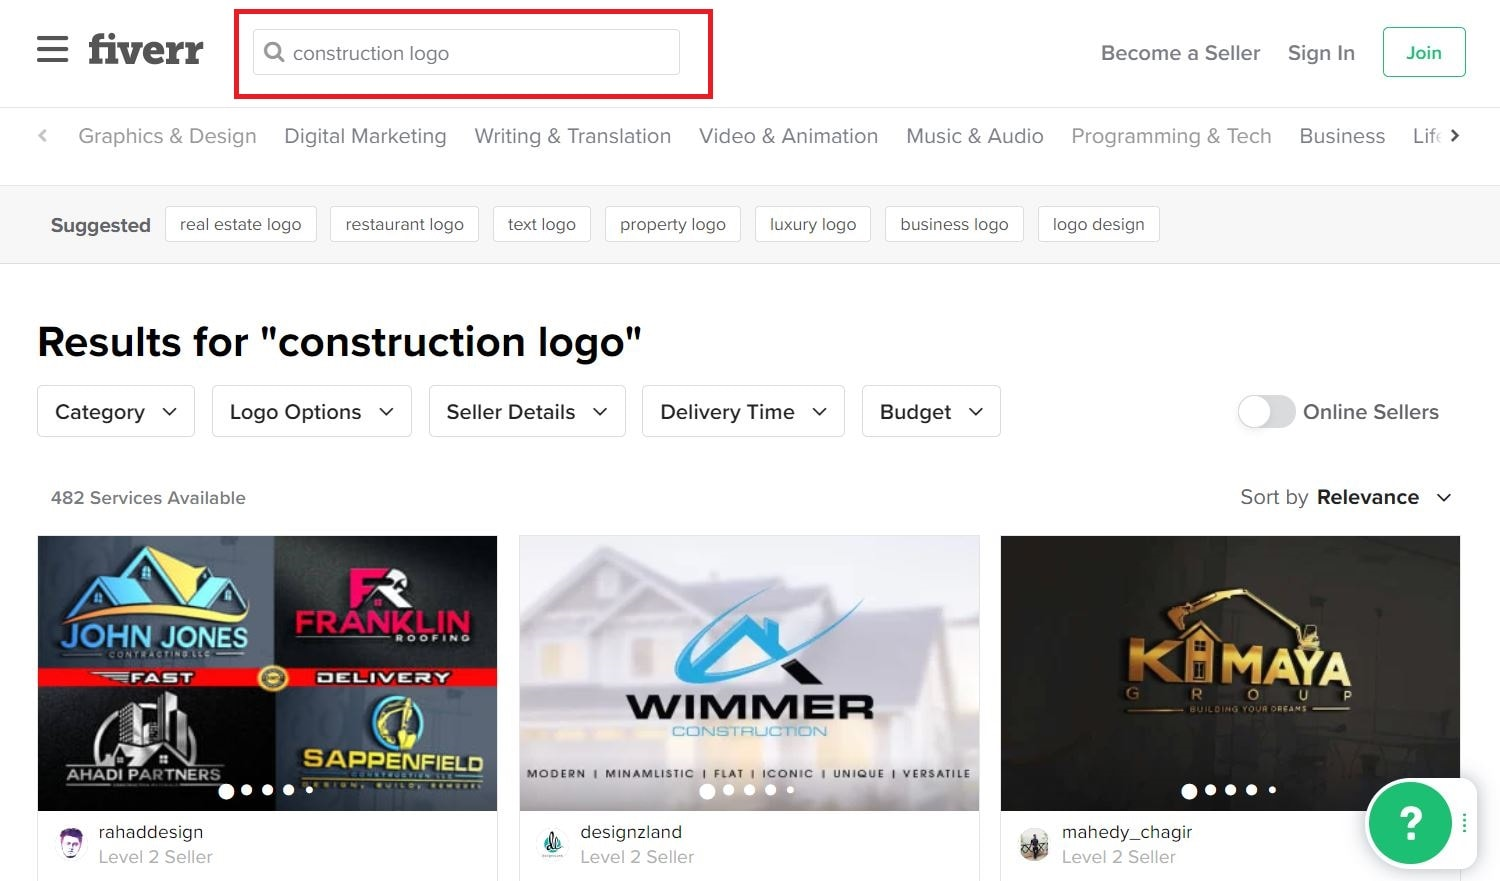 Fiverr screenshot - Construction logo designers